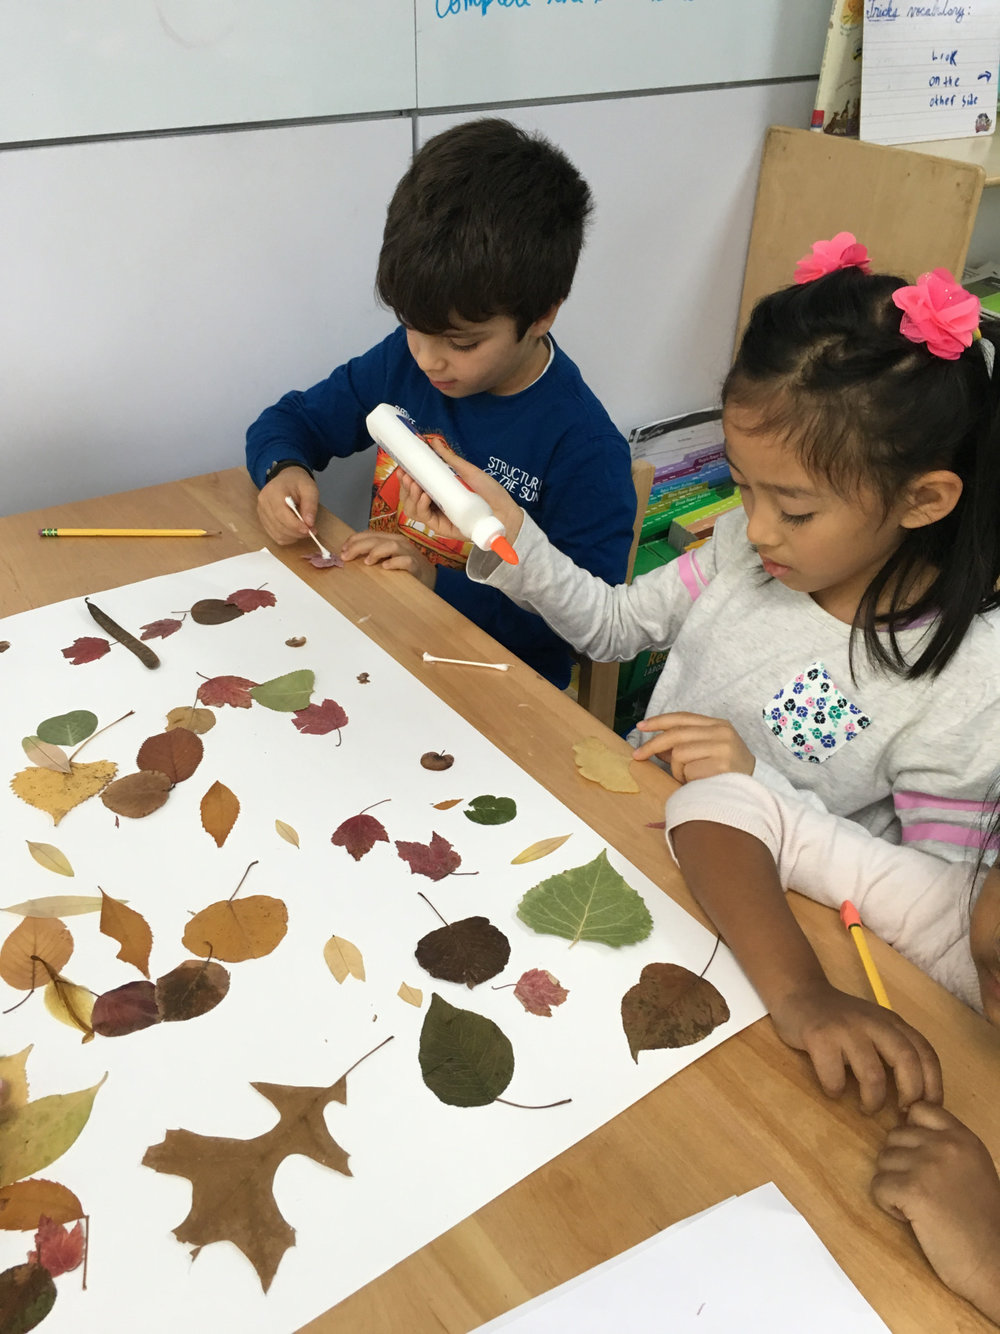 Using all of the leaves that they collected and pressed last school year, a group of Lower Elementary West students collaborated on making a leaf collage.